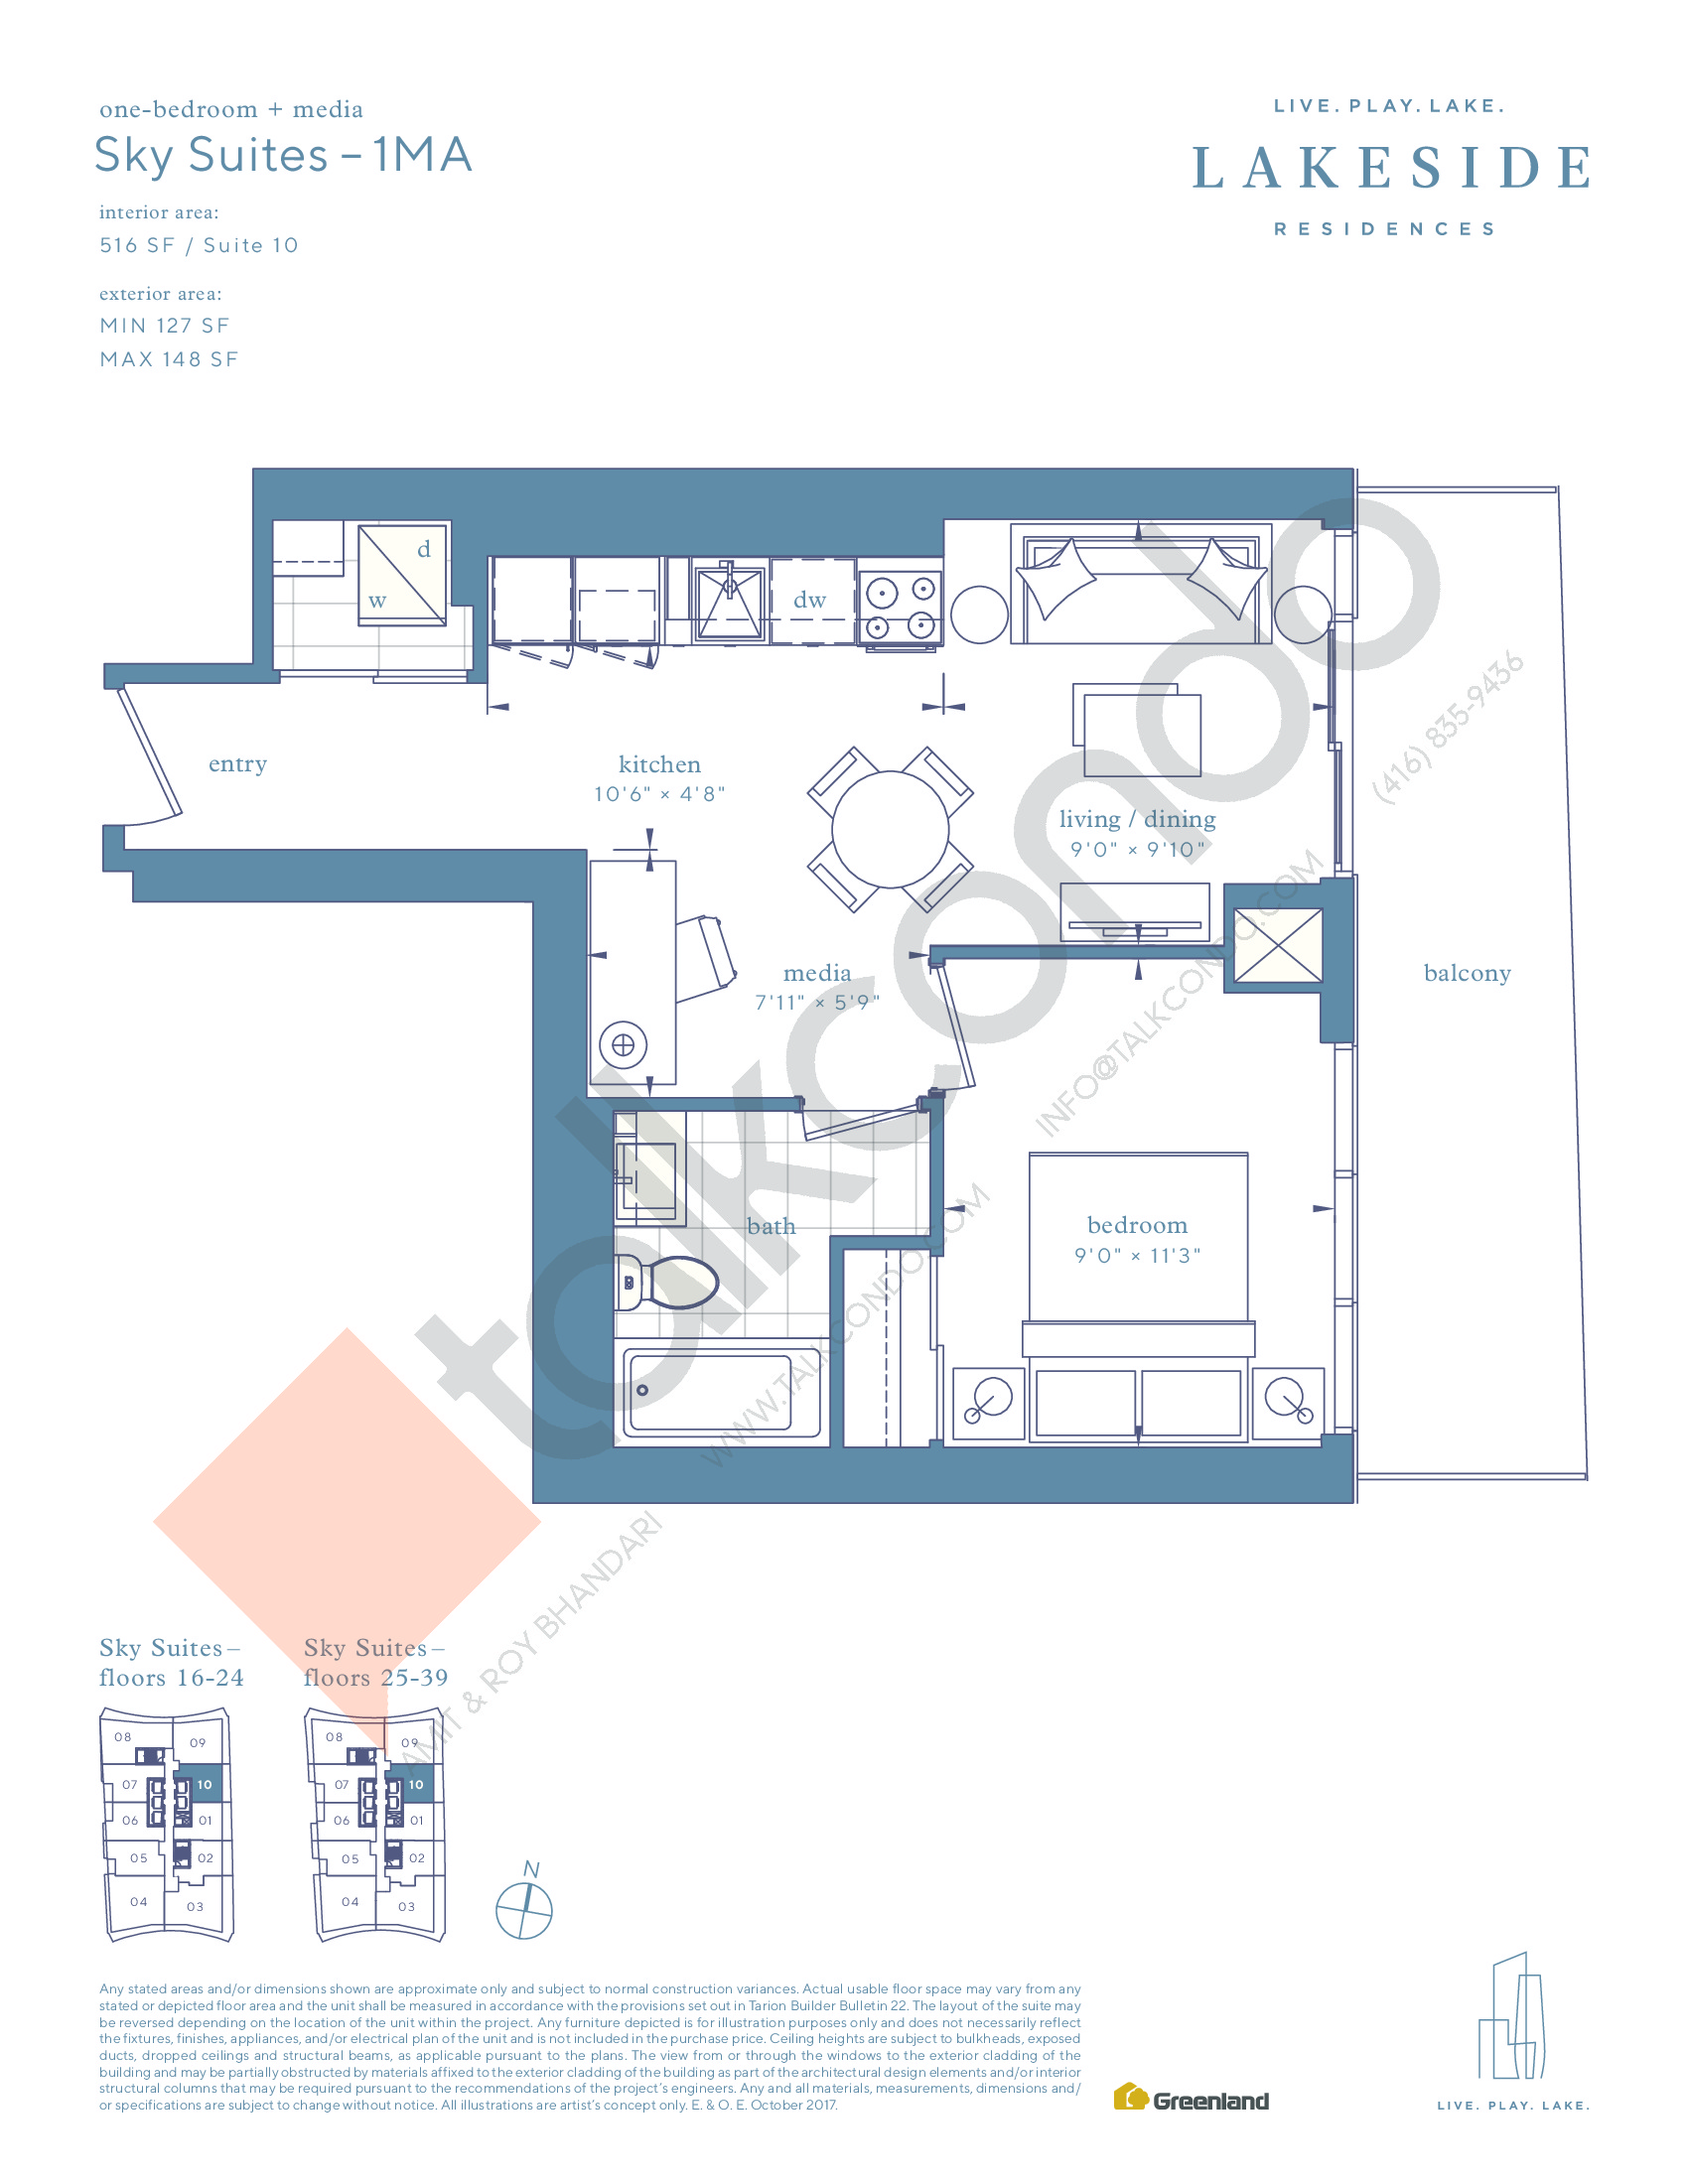 Sky Suites - 1MA Floor Plan at Lakeside Residences - 516 sq.ft